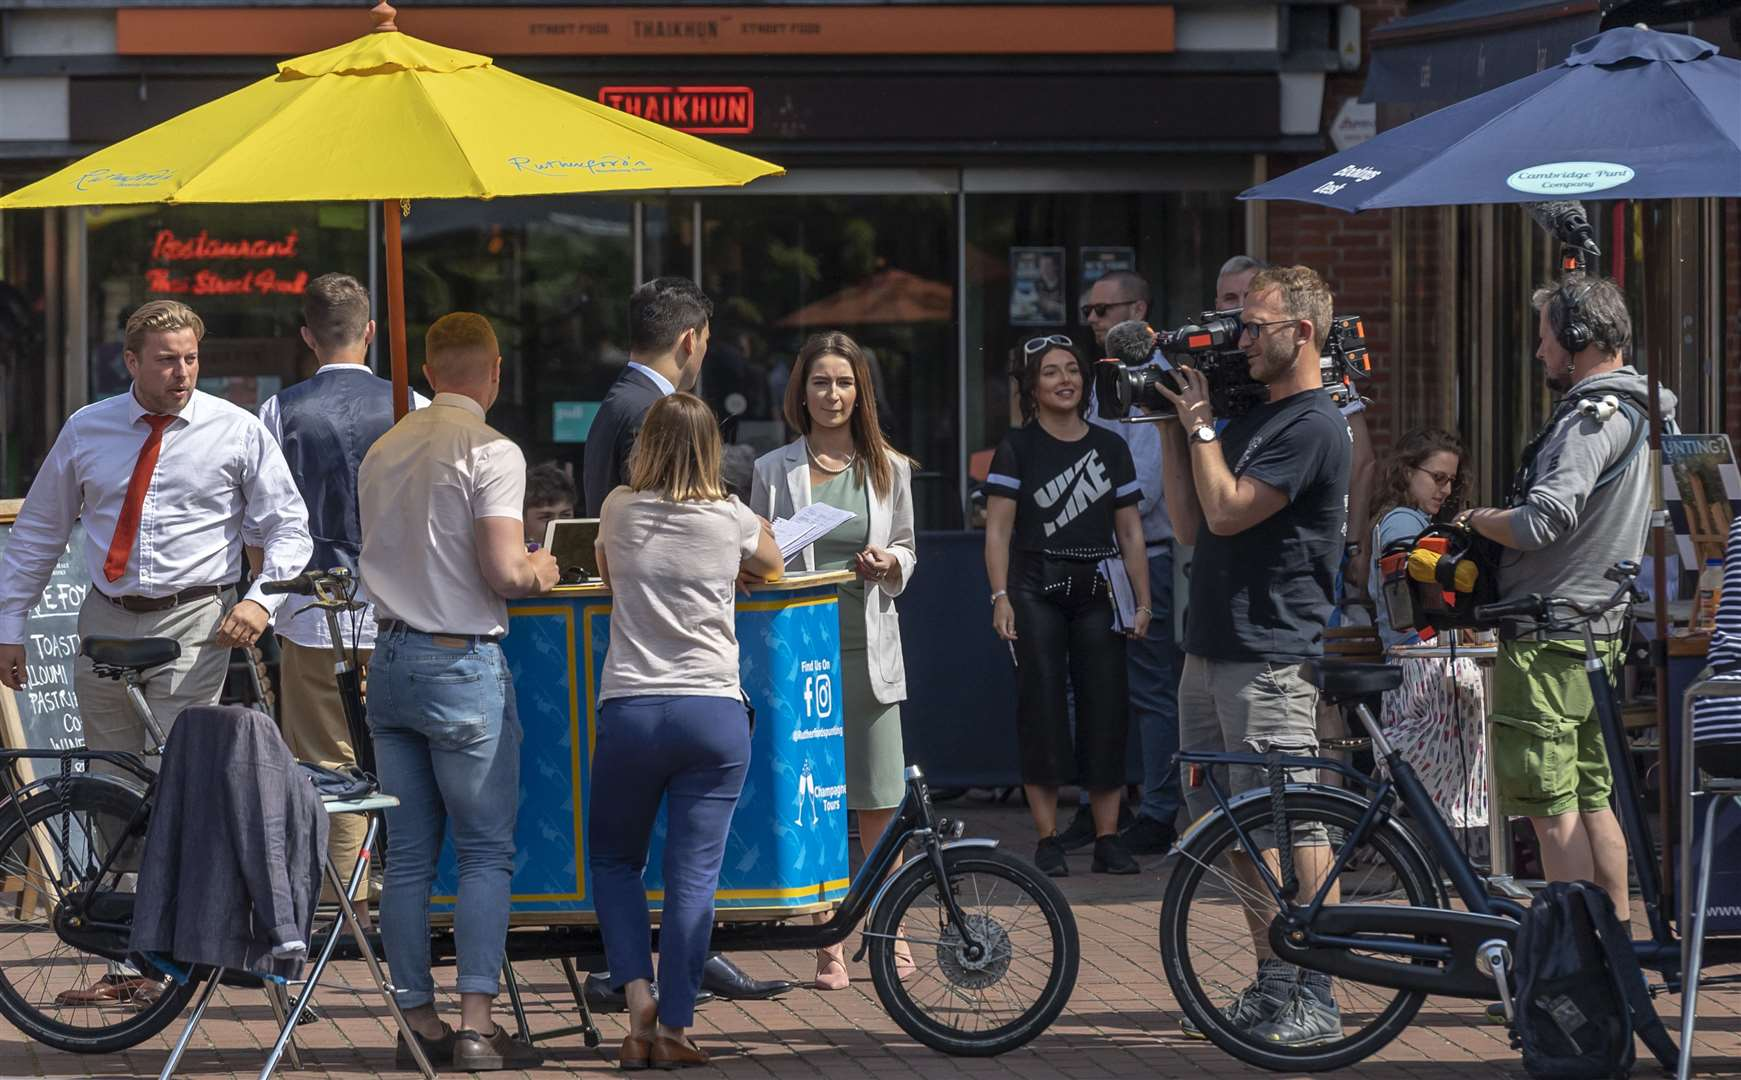 The Quayside in Cambridge was a filming location for the 2019 season of BBC One's The Apprentice on Wednesday May 15. Picture: Keith Heppell